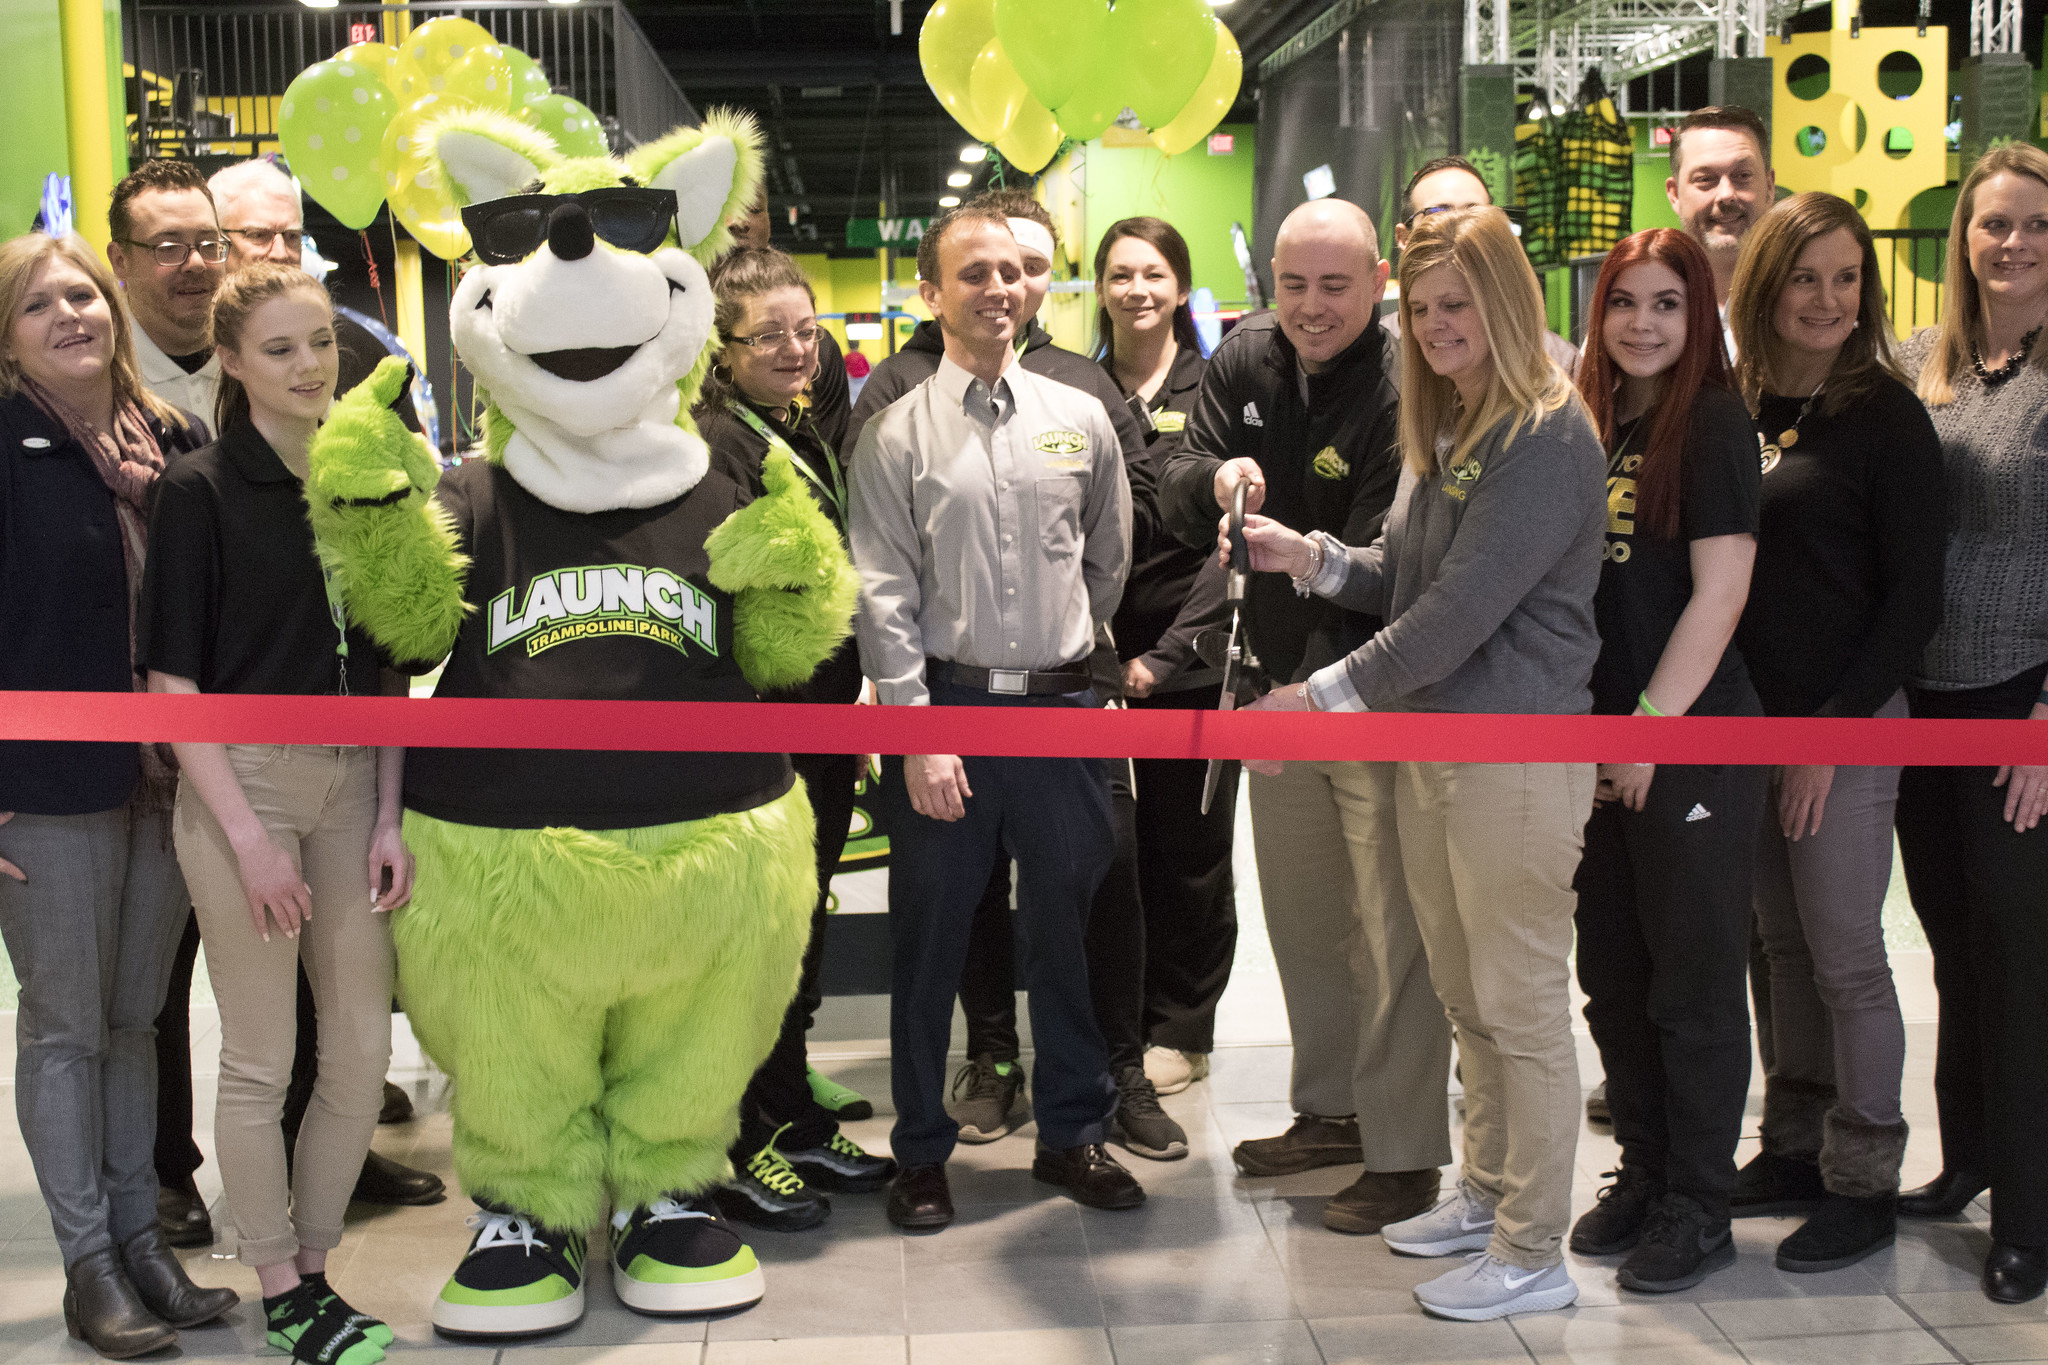 Ribbon Cutting Ceremony at Launch Trampoline Park